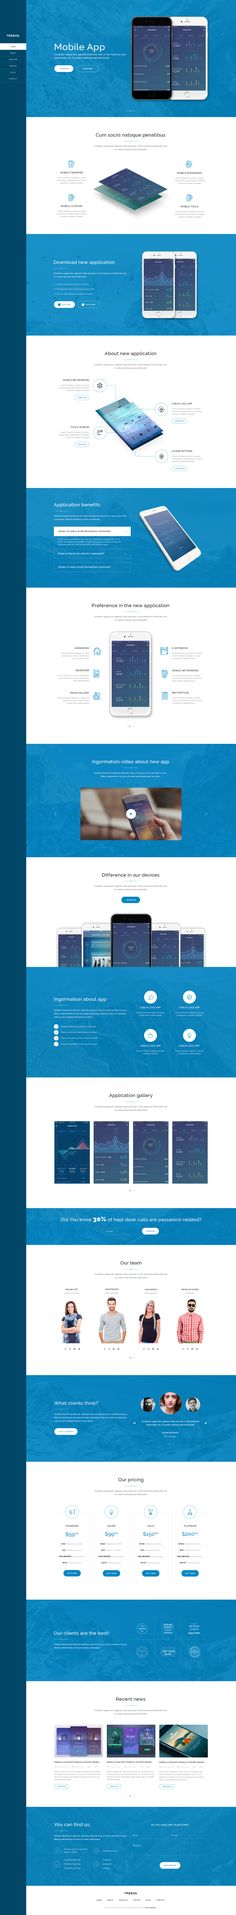 Treson - One Page Agency, App, Startup PSD Template • Download ➝ https://themeforest.net/item/treson-one-page-agency-app-startup-psd-template/15707708?ref=pxcr